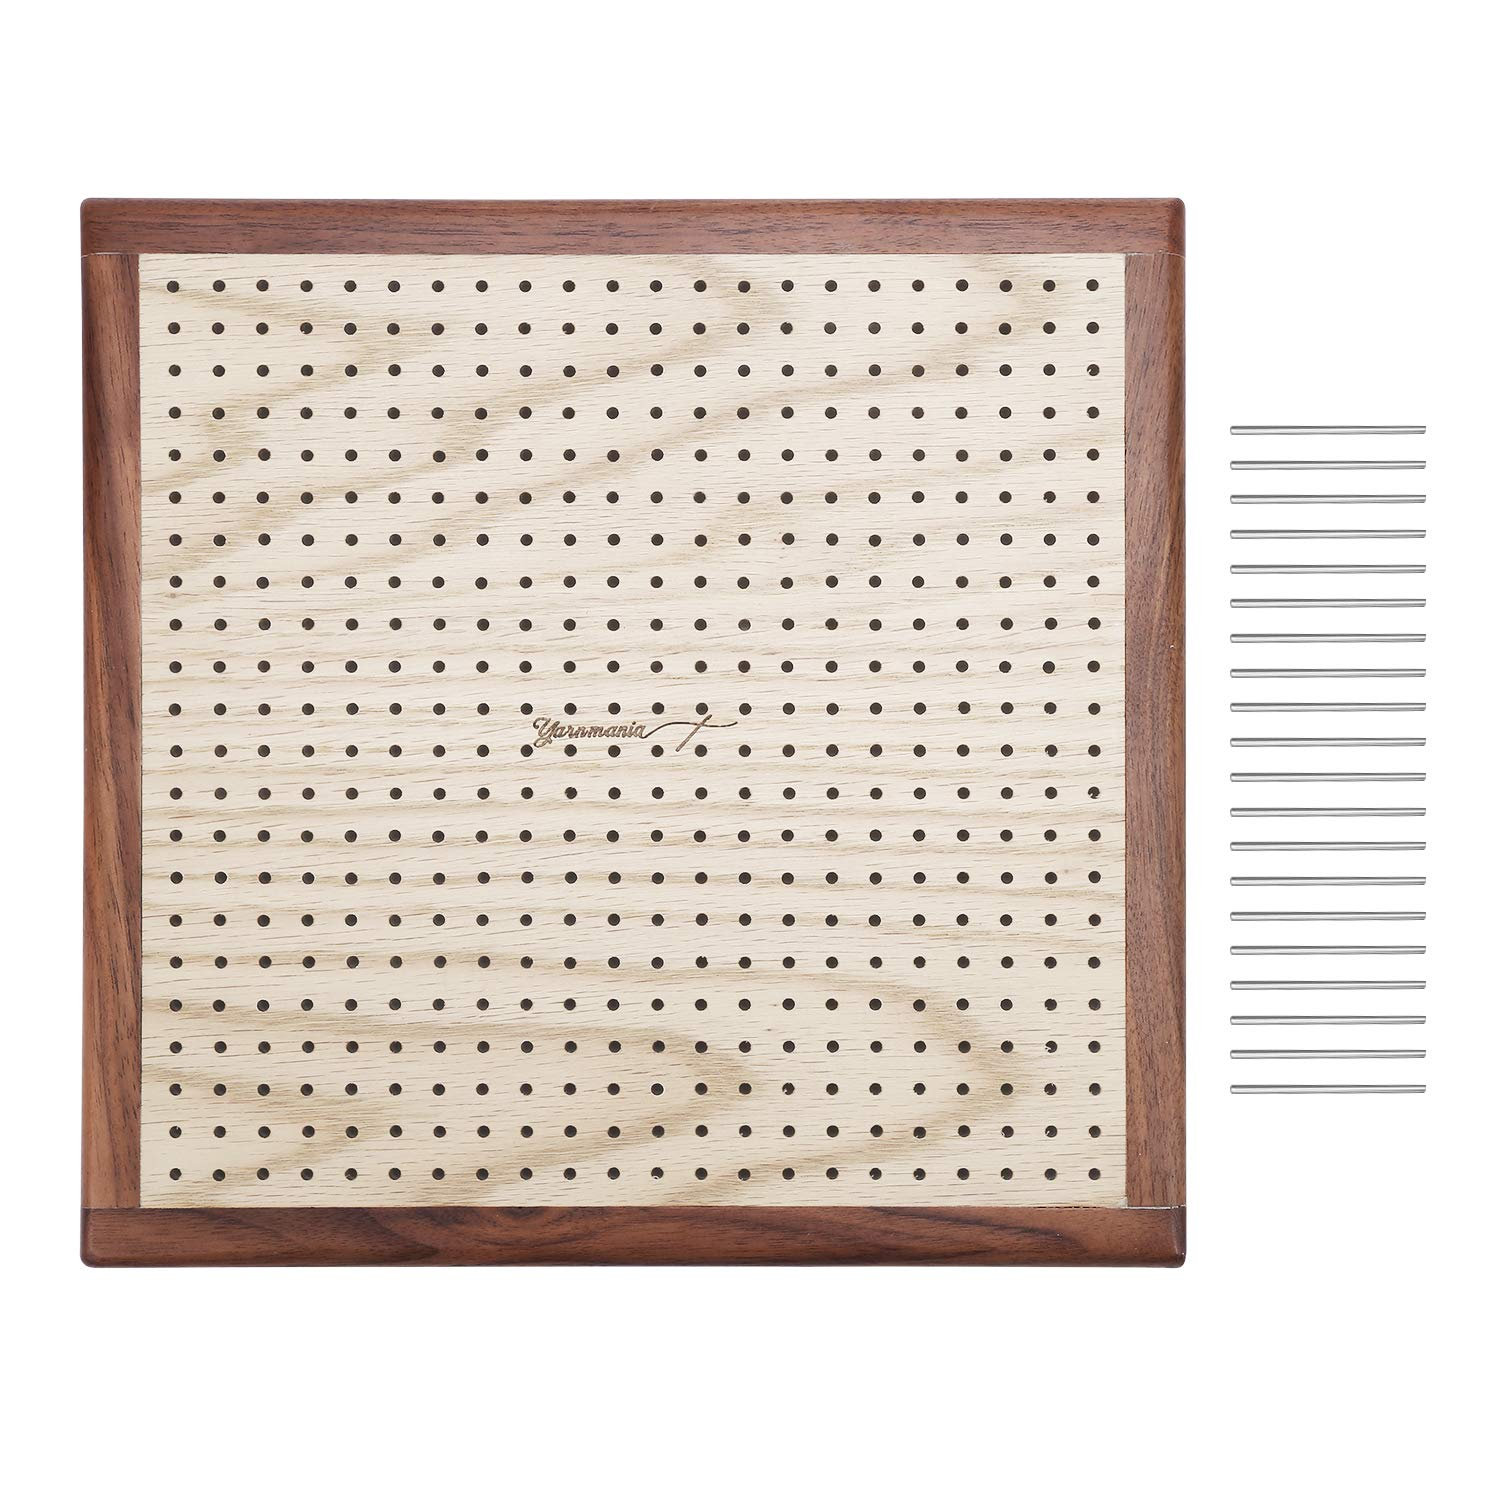 Yarn Mania - Premium Blocking Boards for Knitting with Grids - Handcrafted Wood Crochet Blocking Board with 20 Stainless Steel Pins (13 inches)